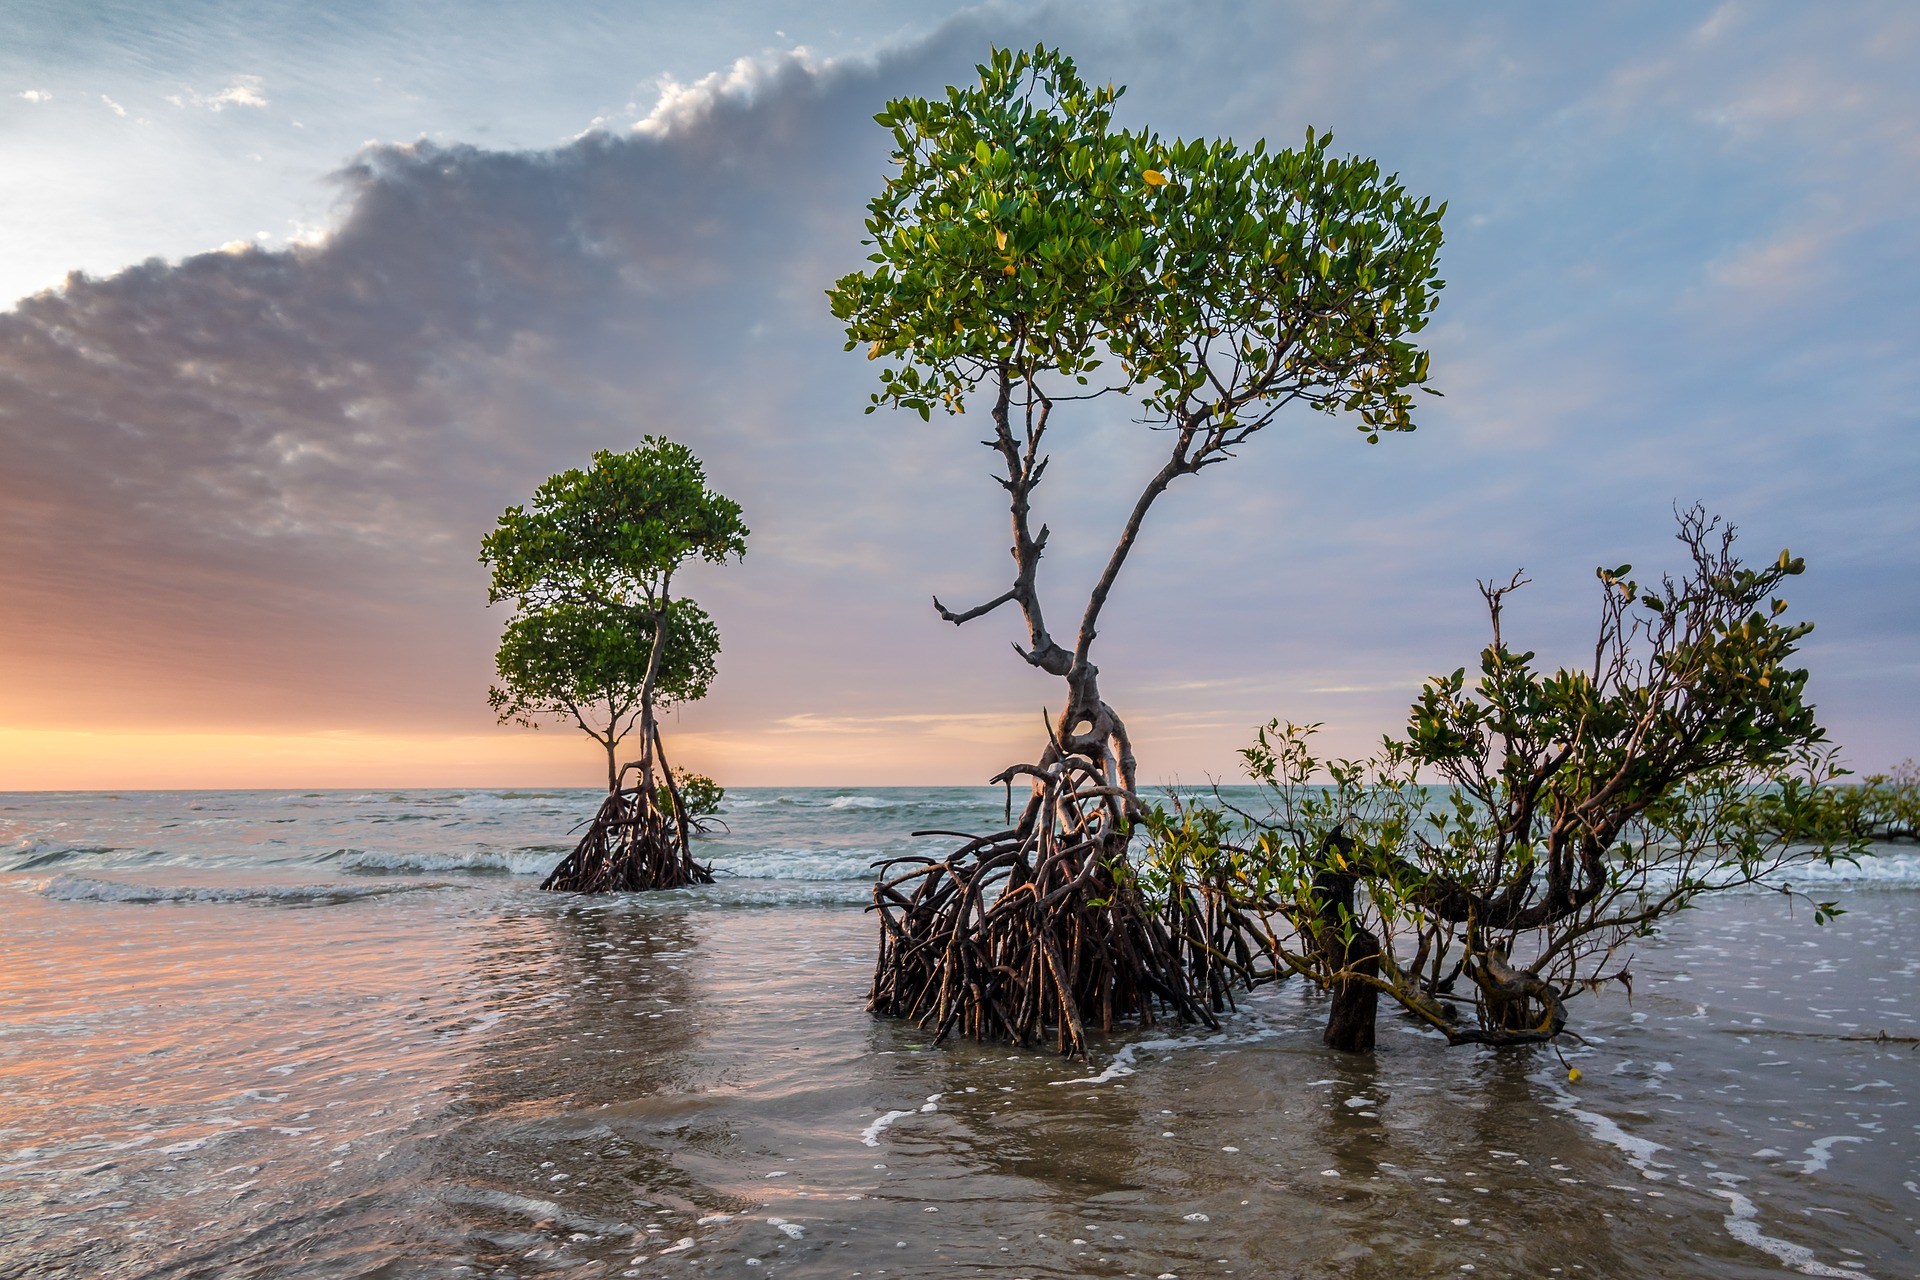 Trees with exposed roots at the edge of the ocean